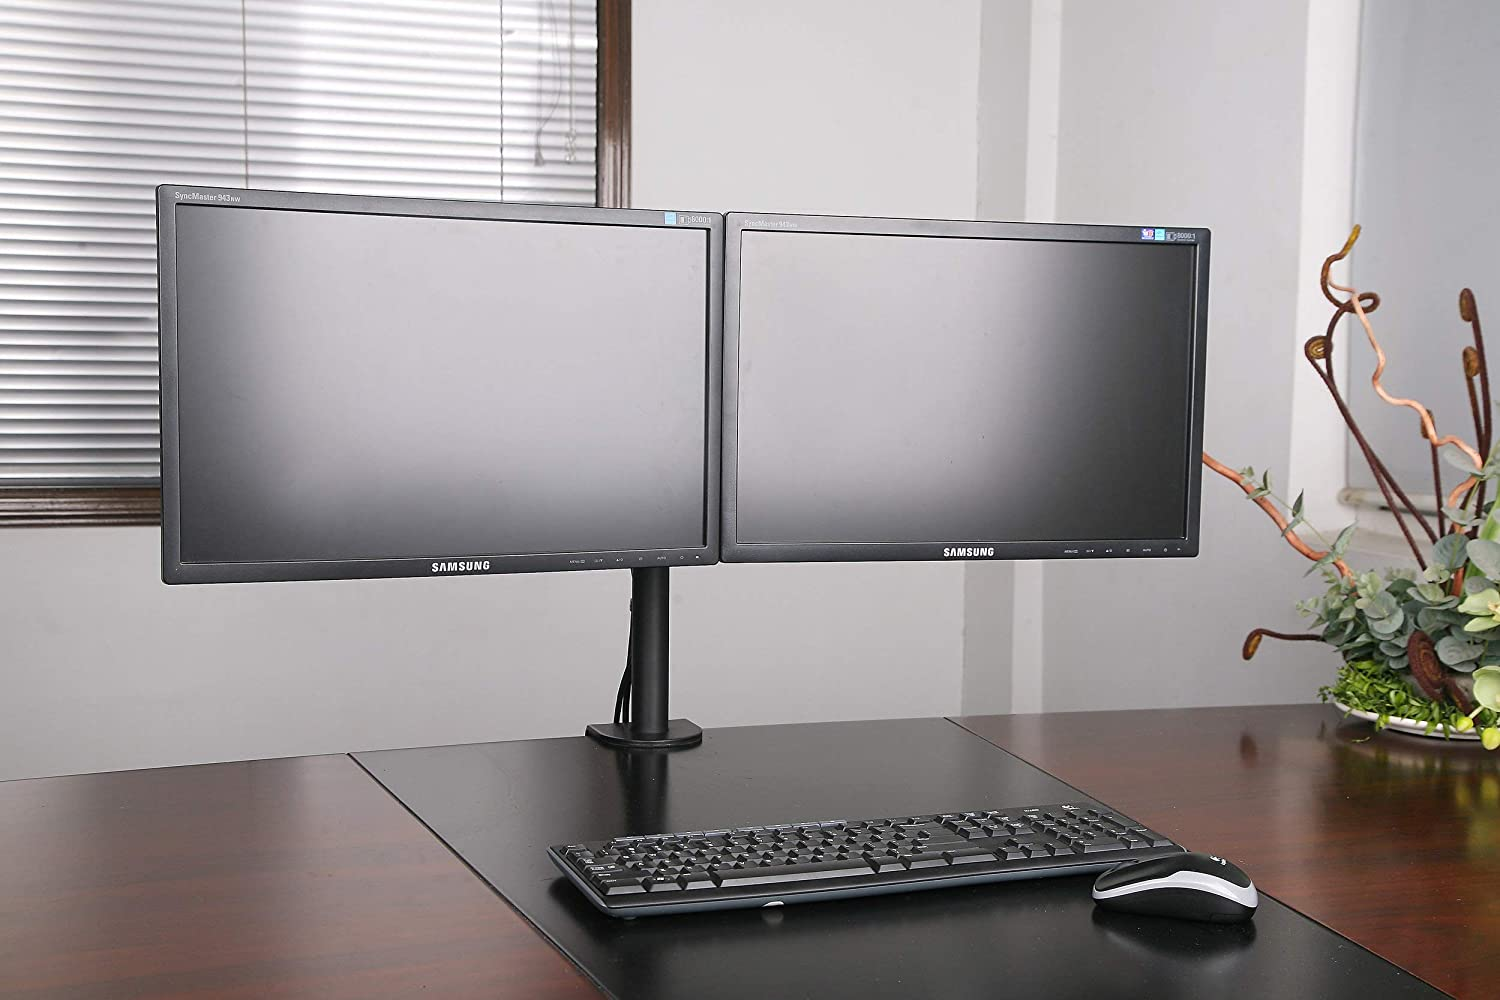 Adjustable Computer Monitor Desk Mount Stand for Dual LCD Flat Screen Monitor